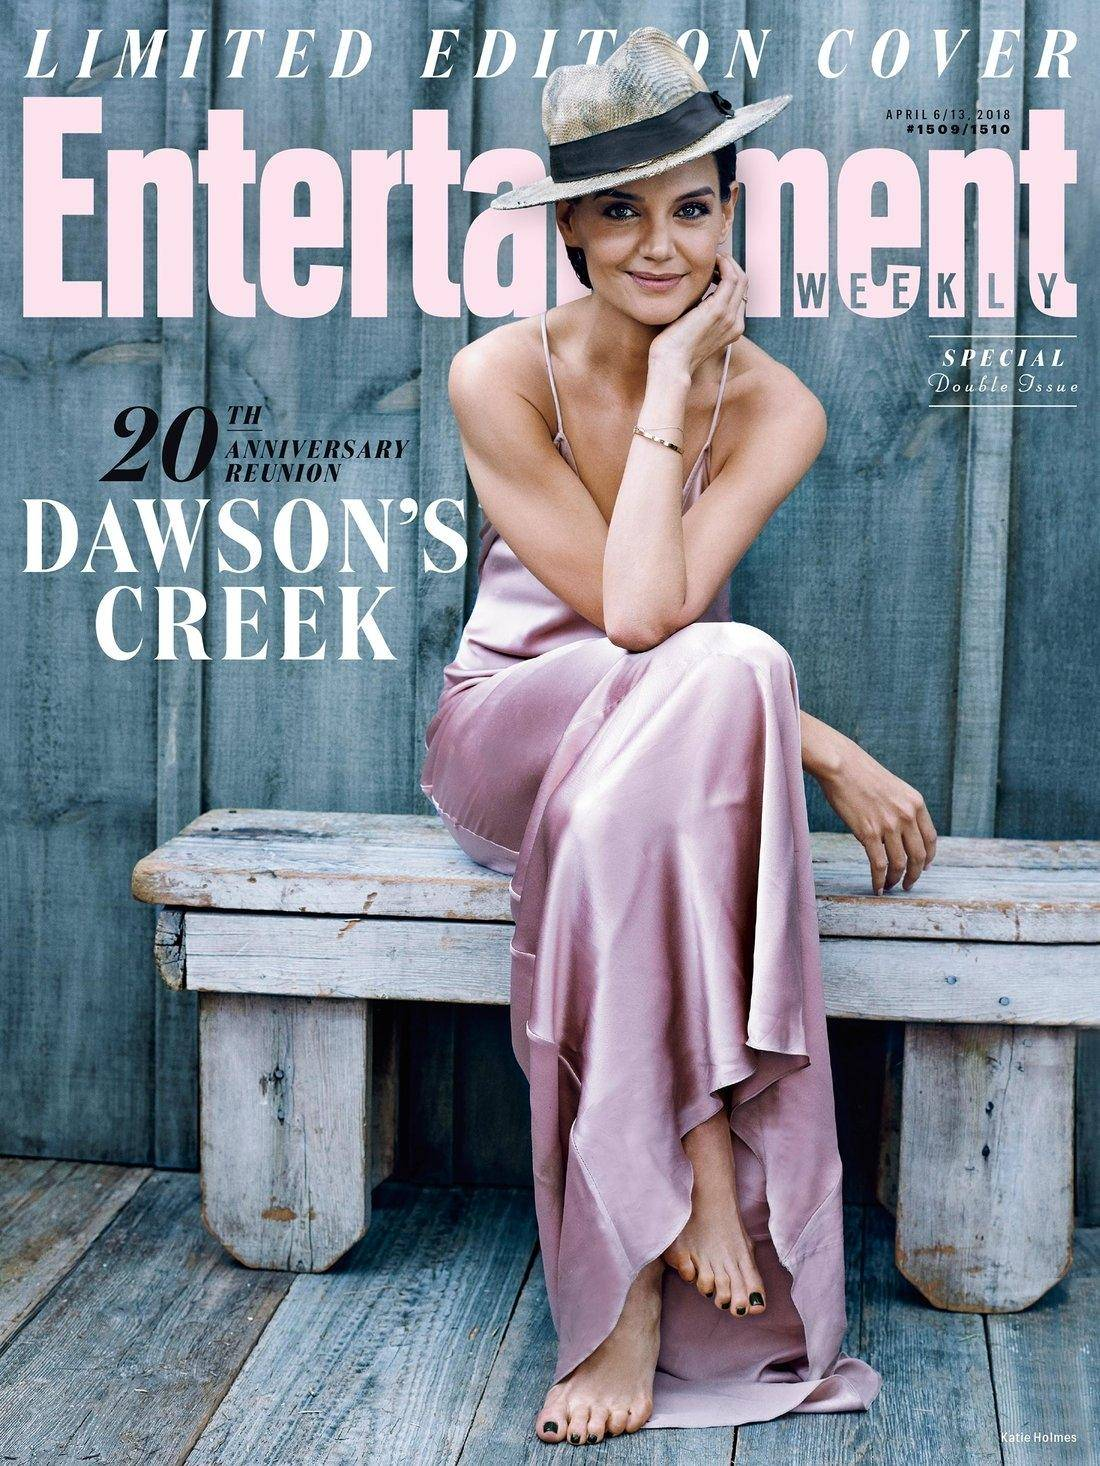 fot. Entertainment Weekly